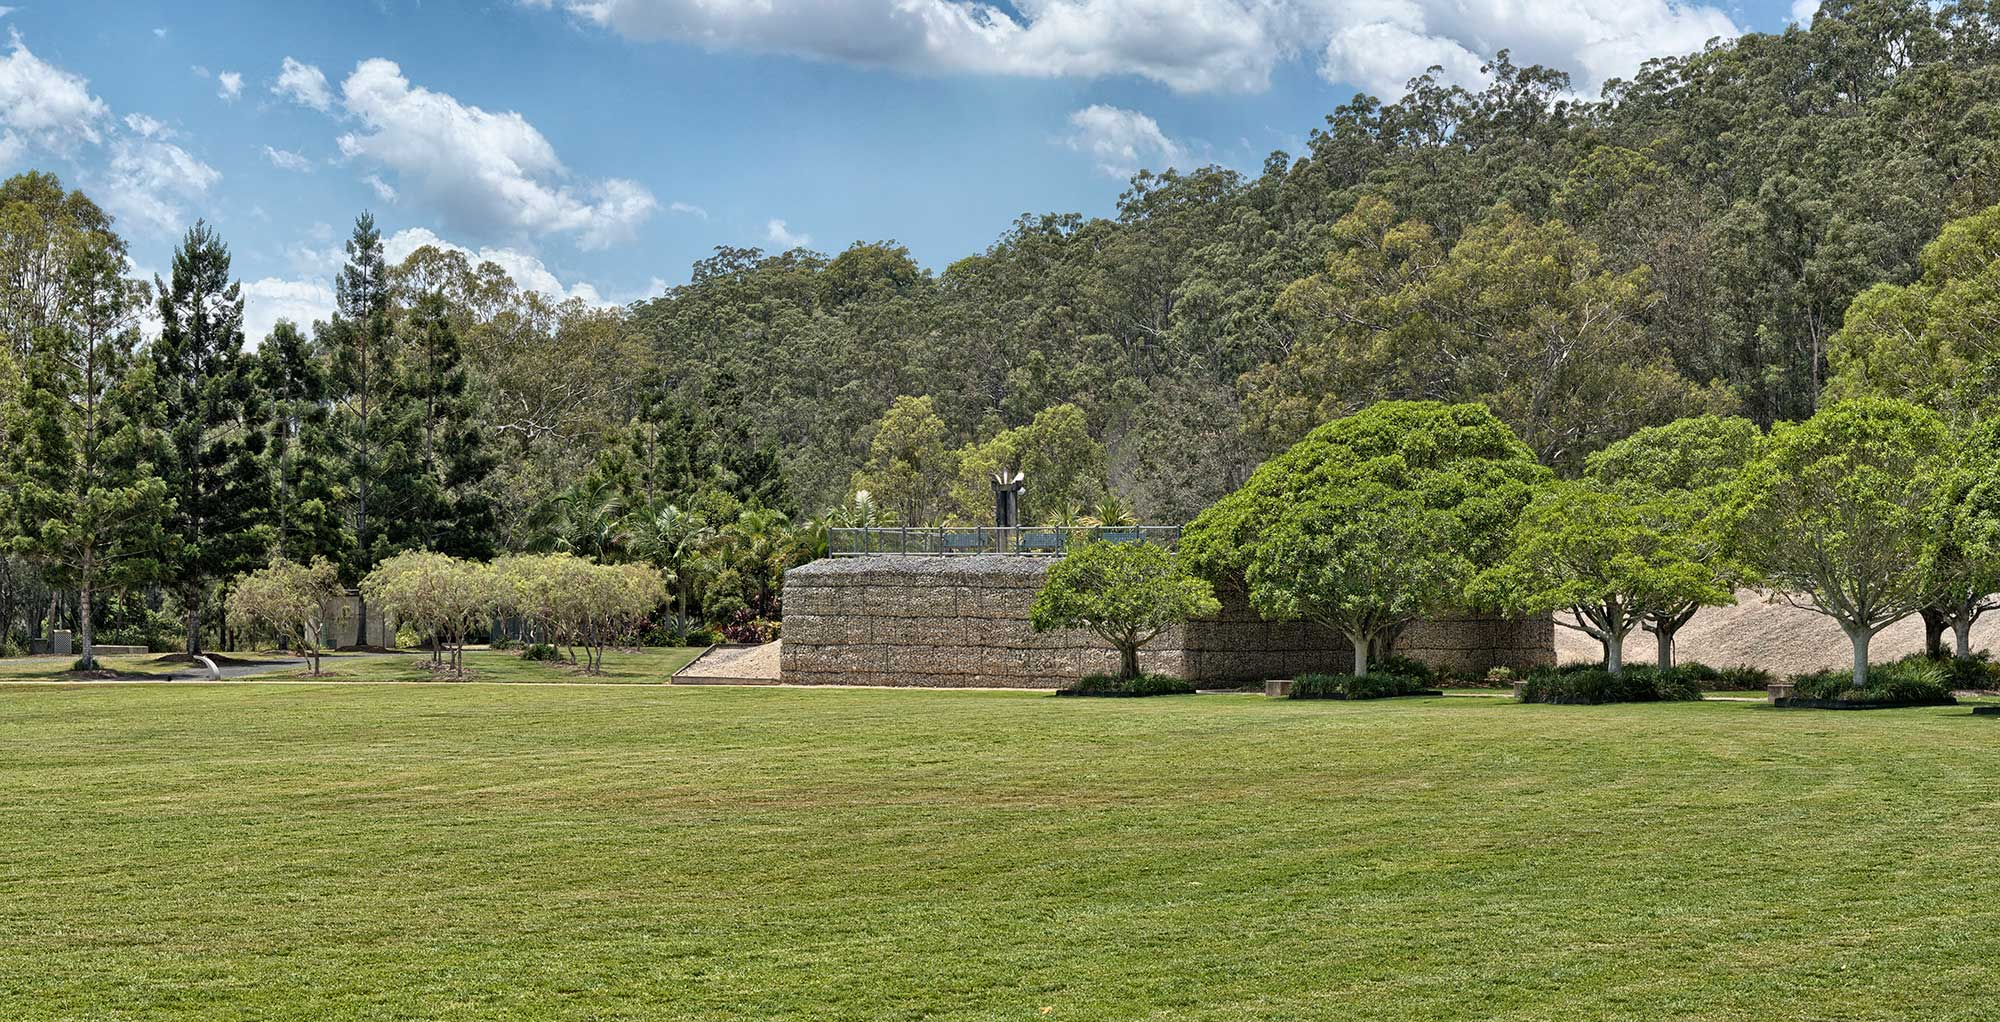 Concrib Gabion viewing platform at 17 Mile Rocks , Brisbane from across the park